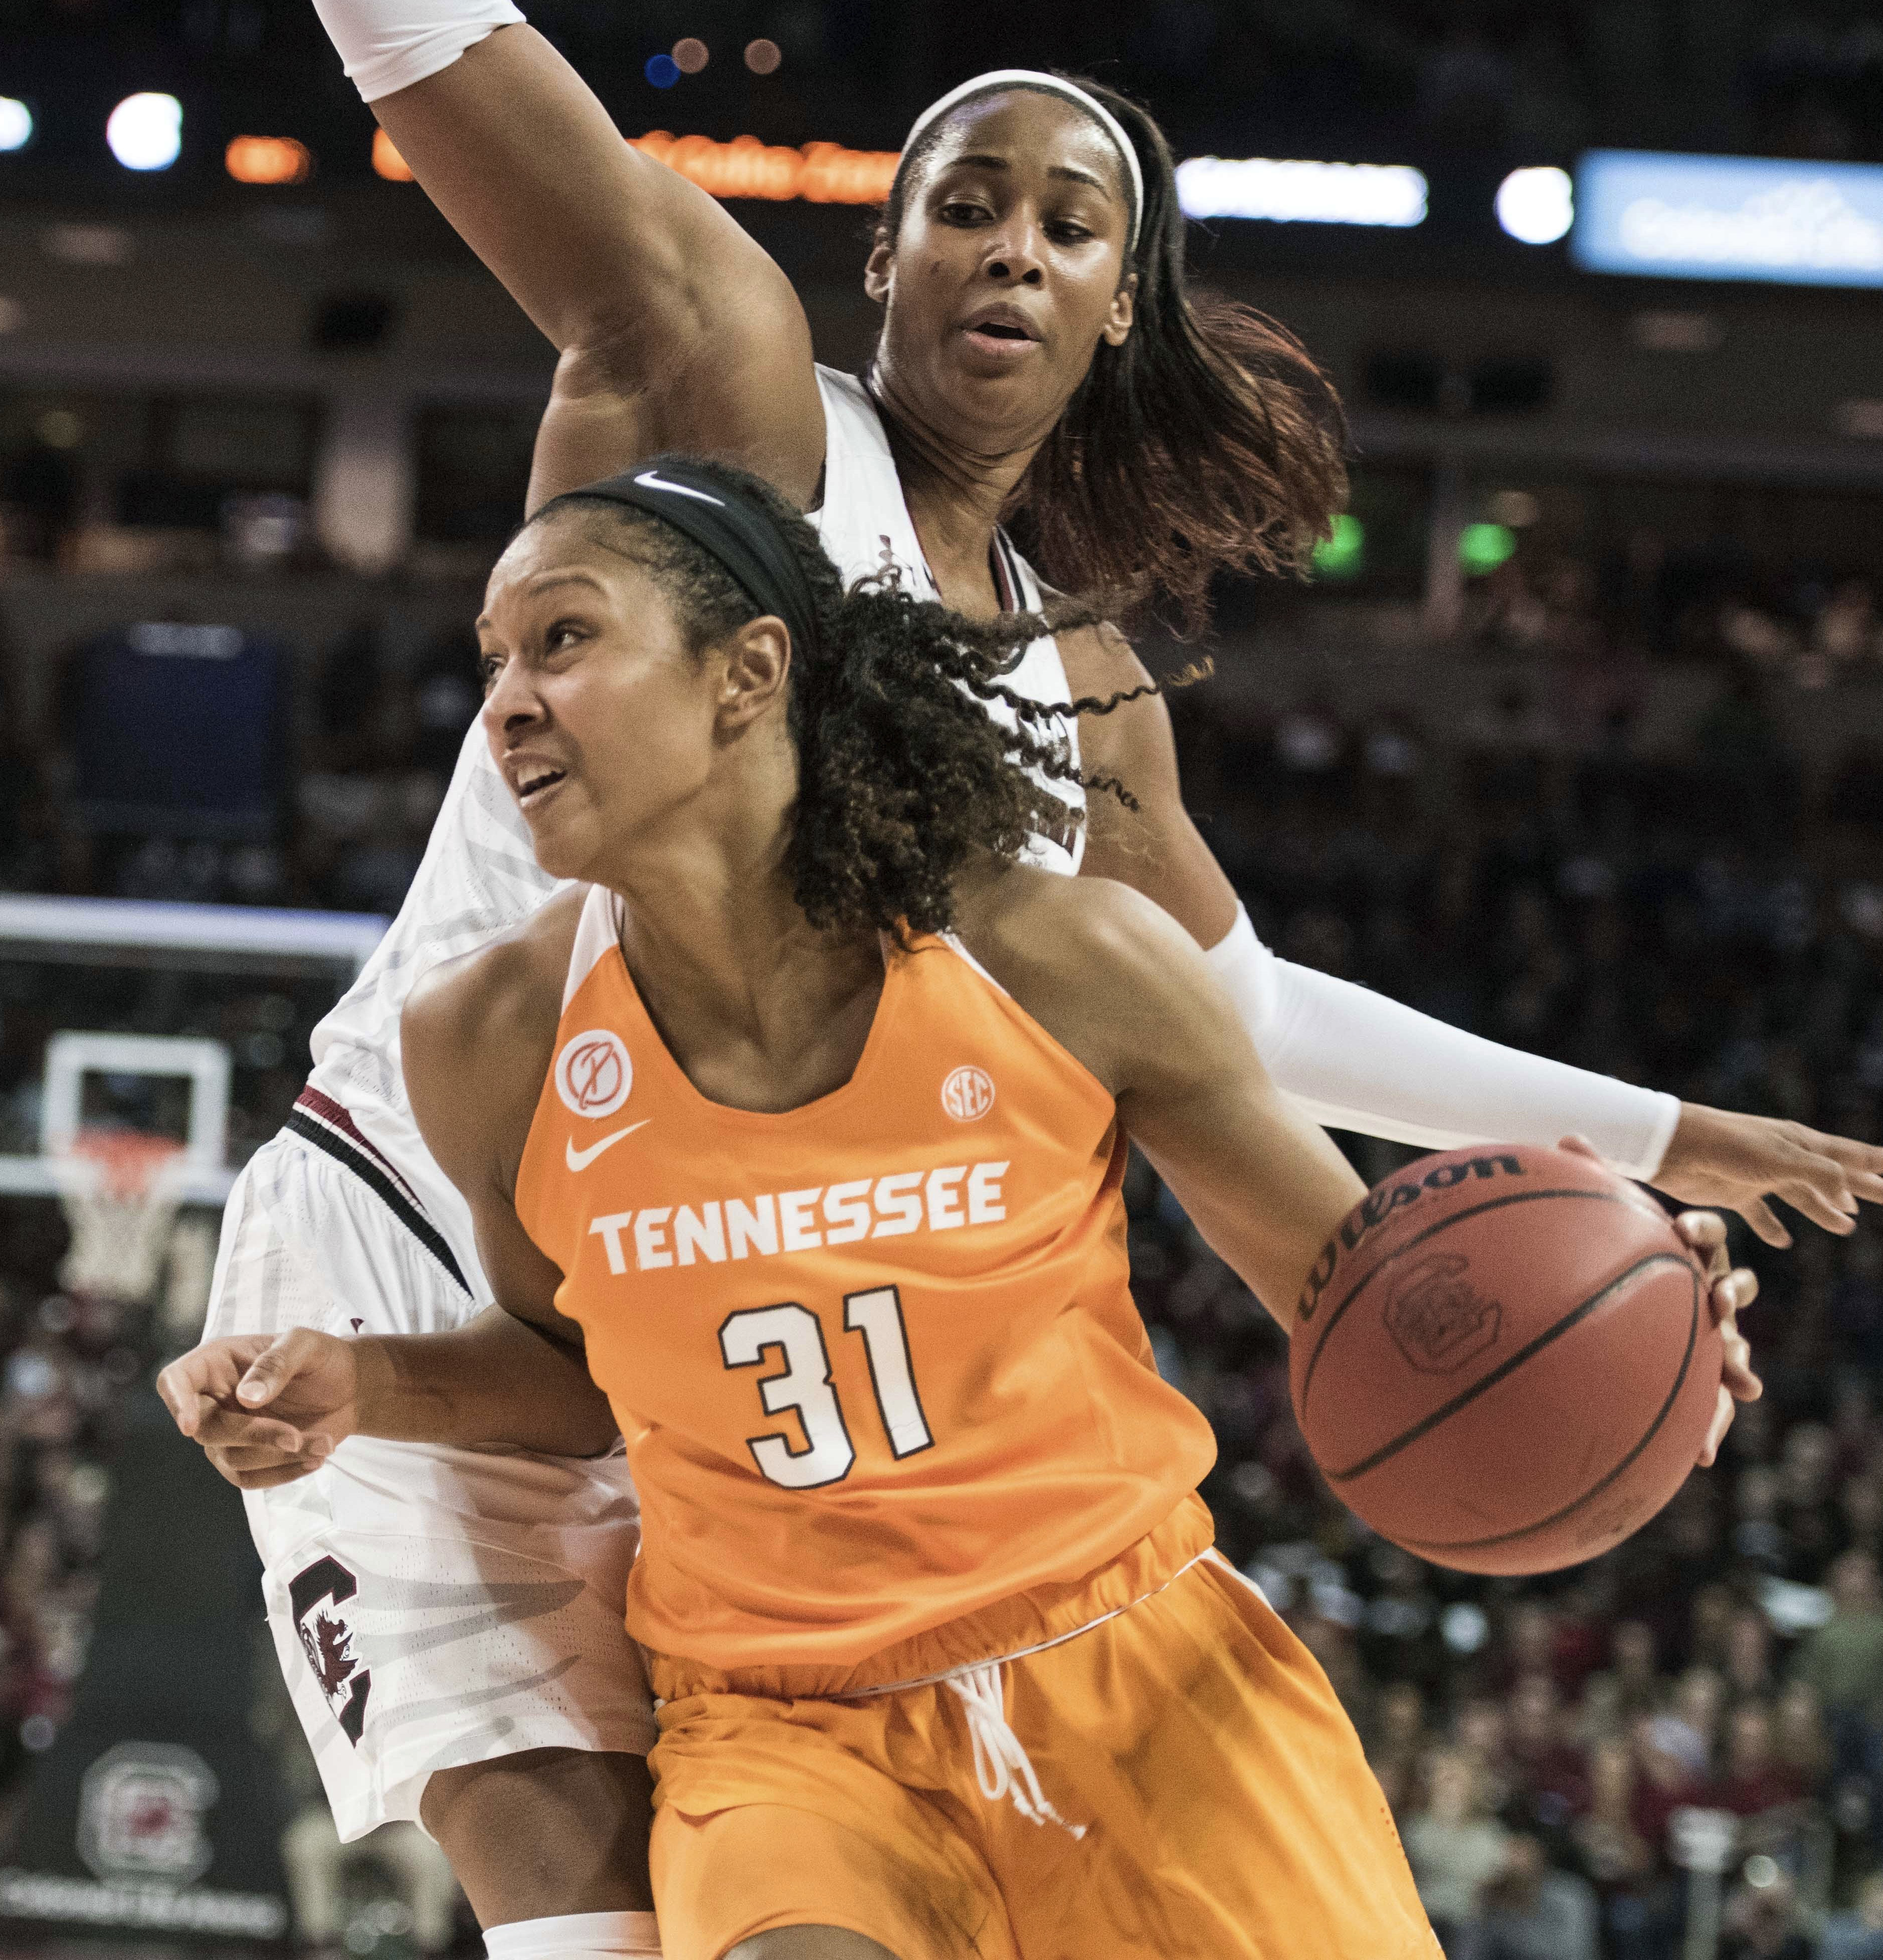 FILE - In this Jan. 30, 2017, file photo, Tennessee forward Jaime Nared (31) drives to the hoop against South Carolina center Alaina Coates, top, during the second half of an NCAA college basketball game in Columbia, S.C. No. 24 Tennessee has overcome its